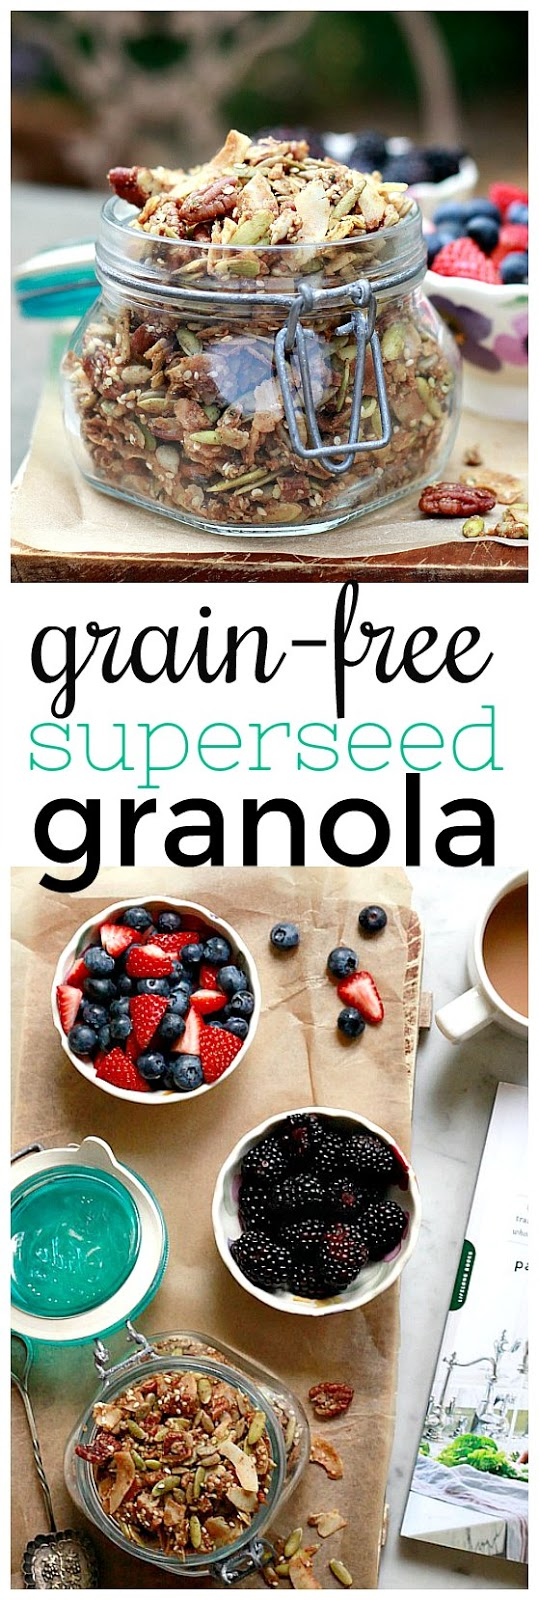 This easy grain-free granola recipe is loaded with seeds, nuts, and coconut and makes a delicious and healthful vegan, paleo breakfast or snack. It's also a great DIY edible gift idea.